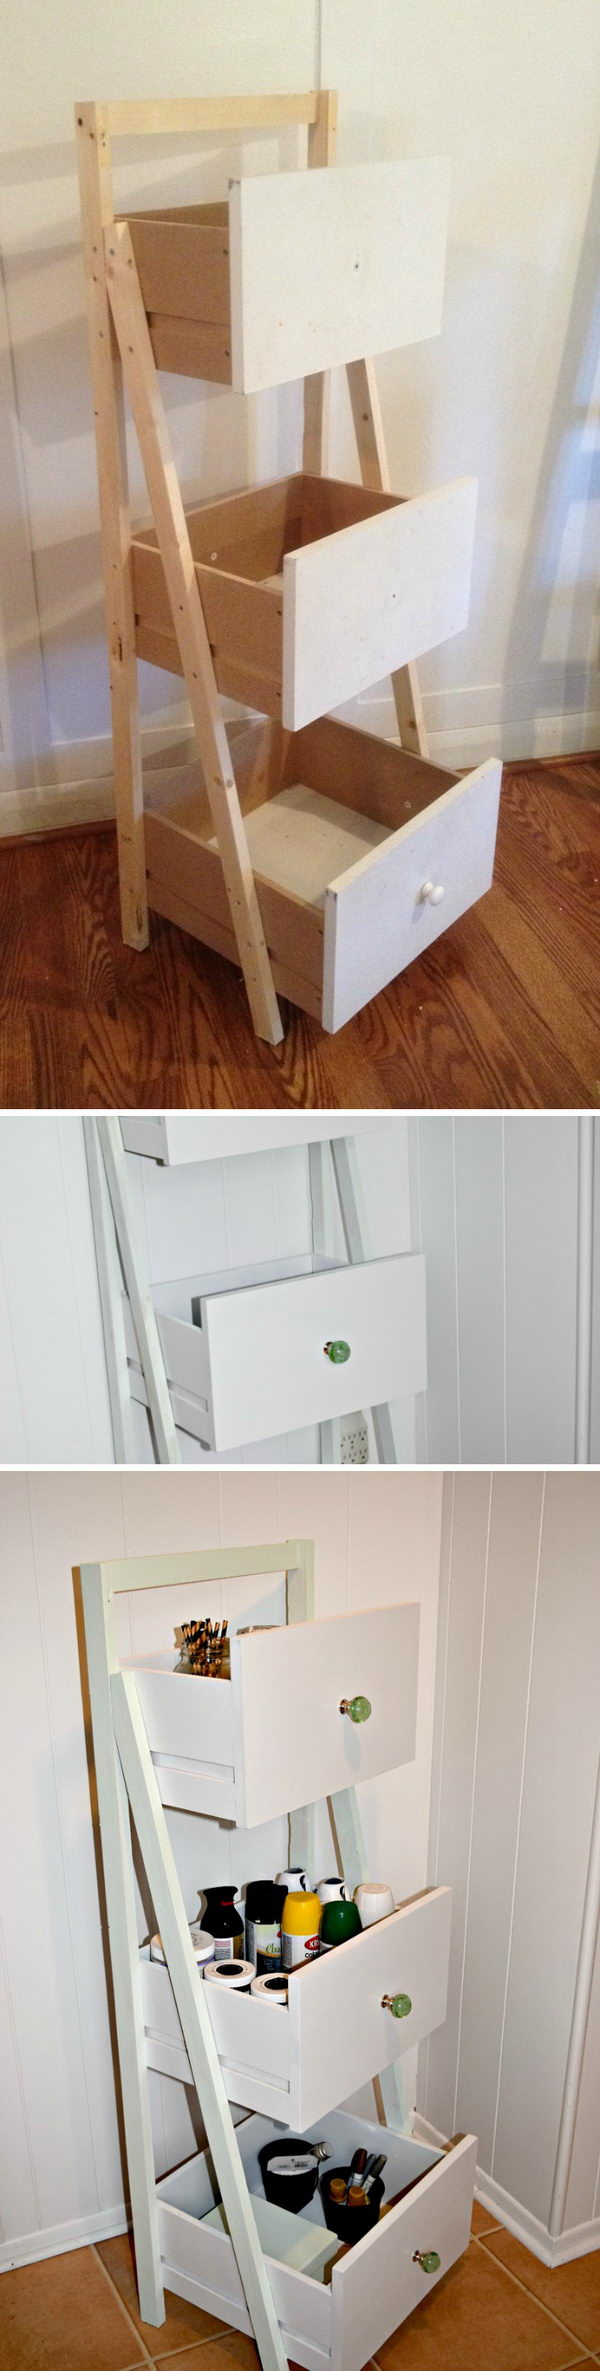 DIY Drawer Ladder Shelf Organizer.